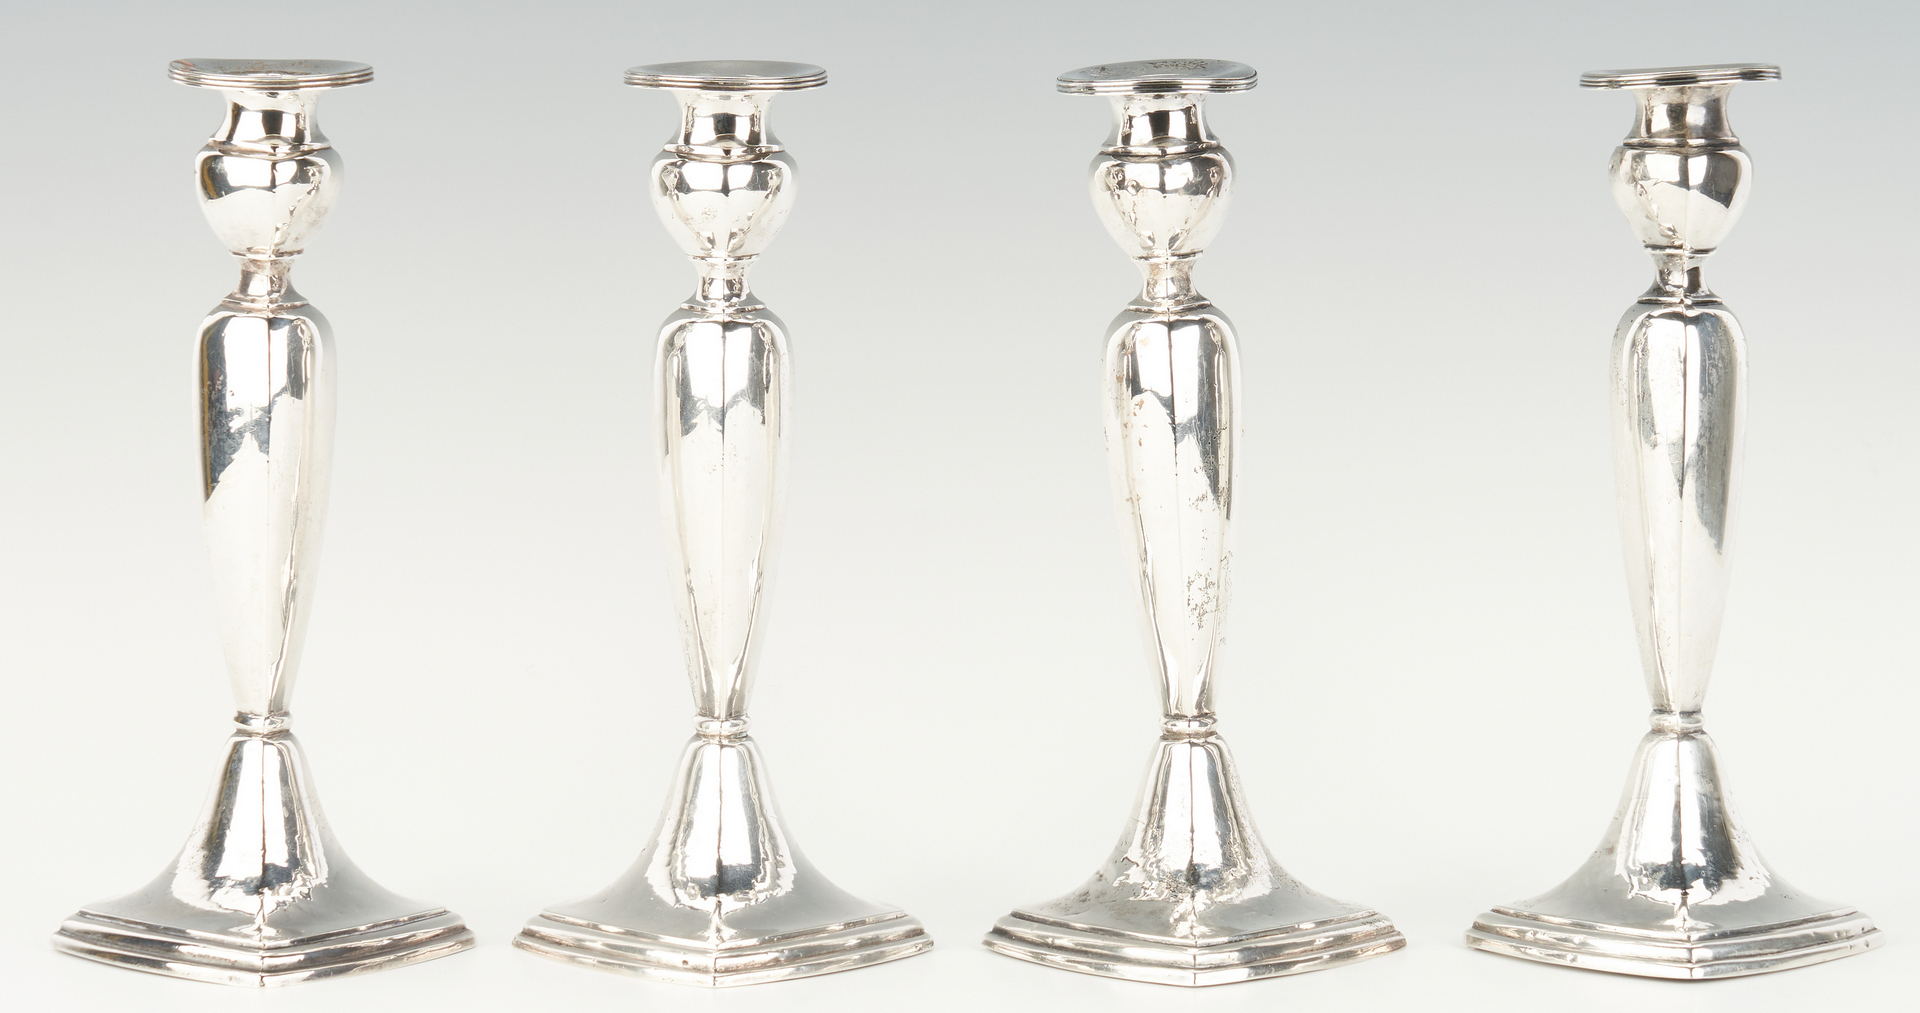 Lot 816: 3 Prs. Sterling Silver Candlesticks, 6 items